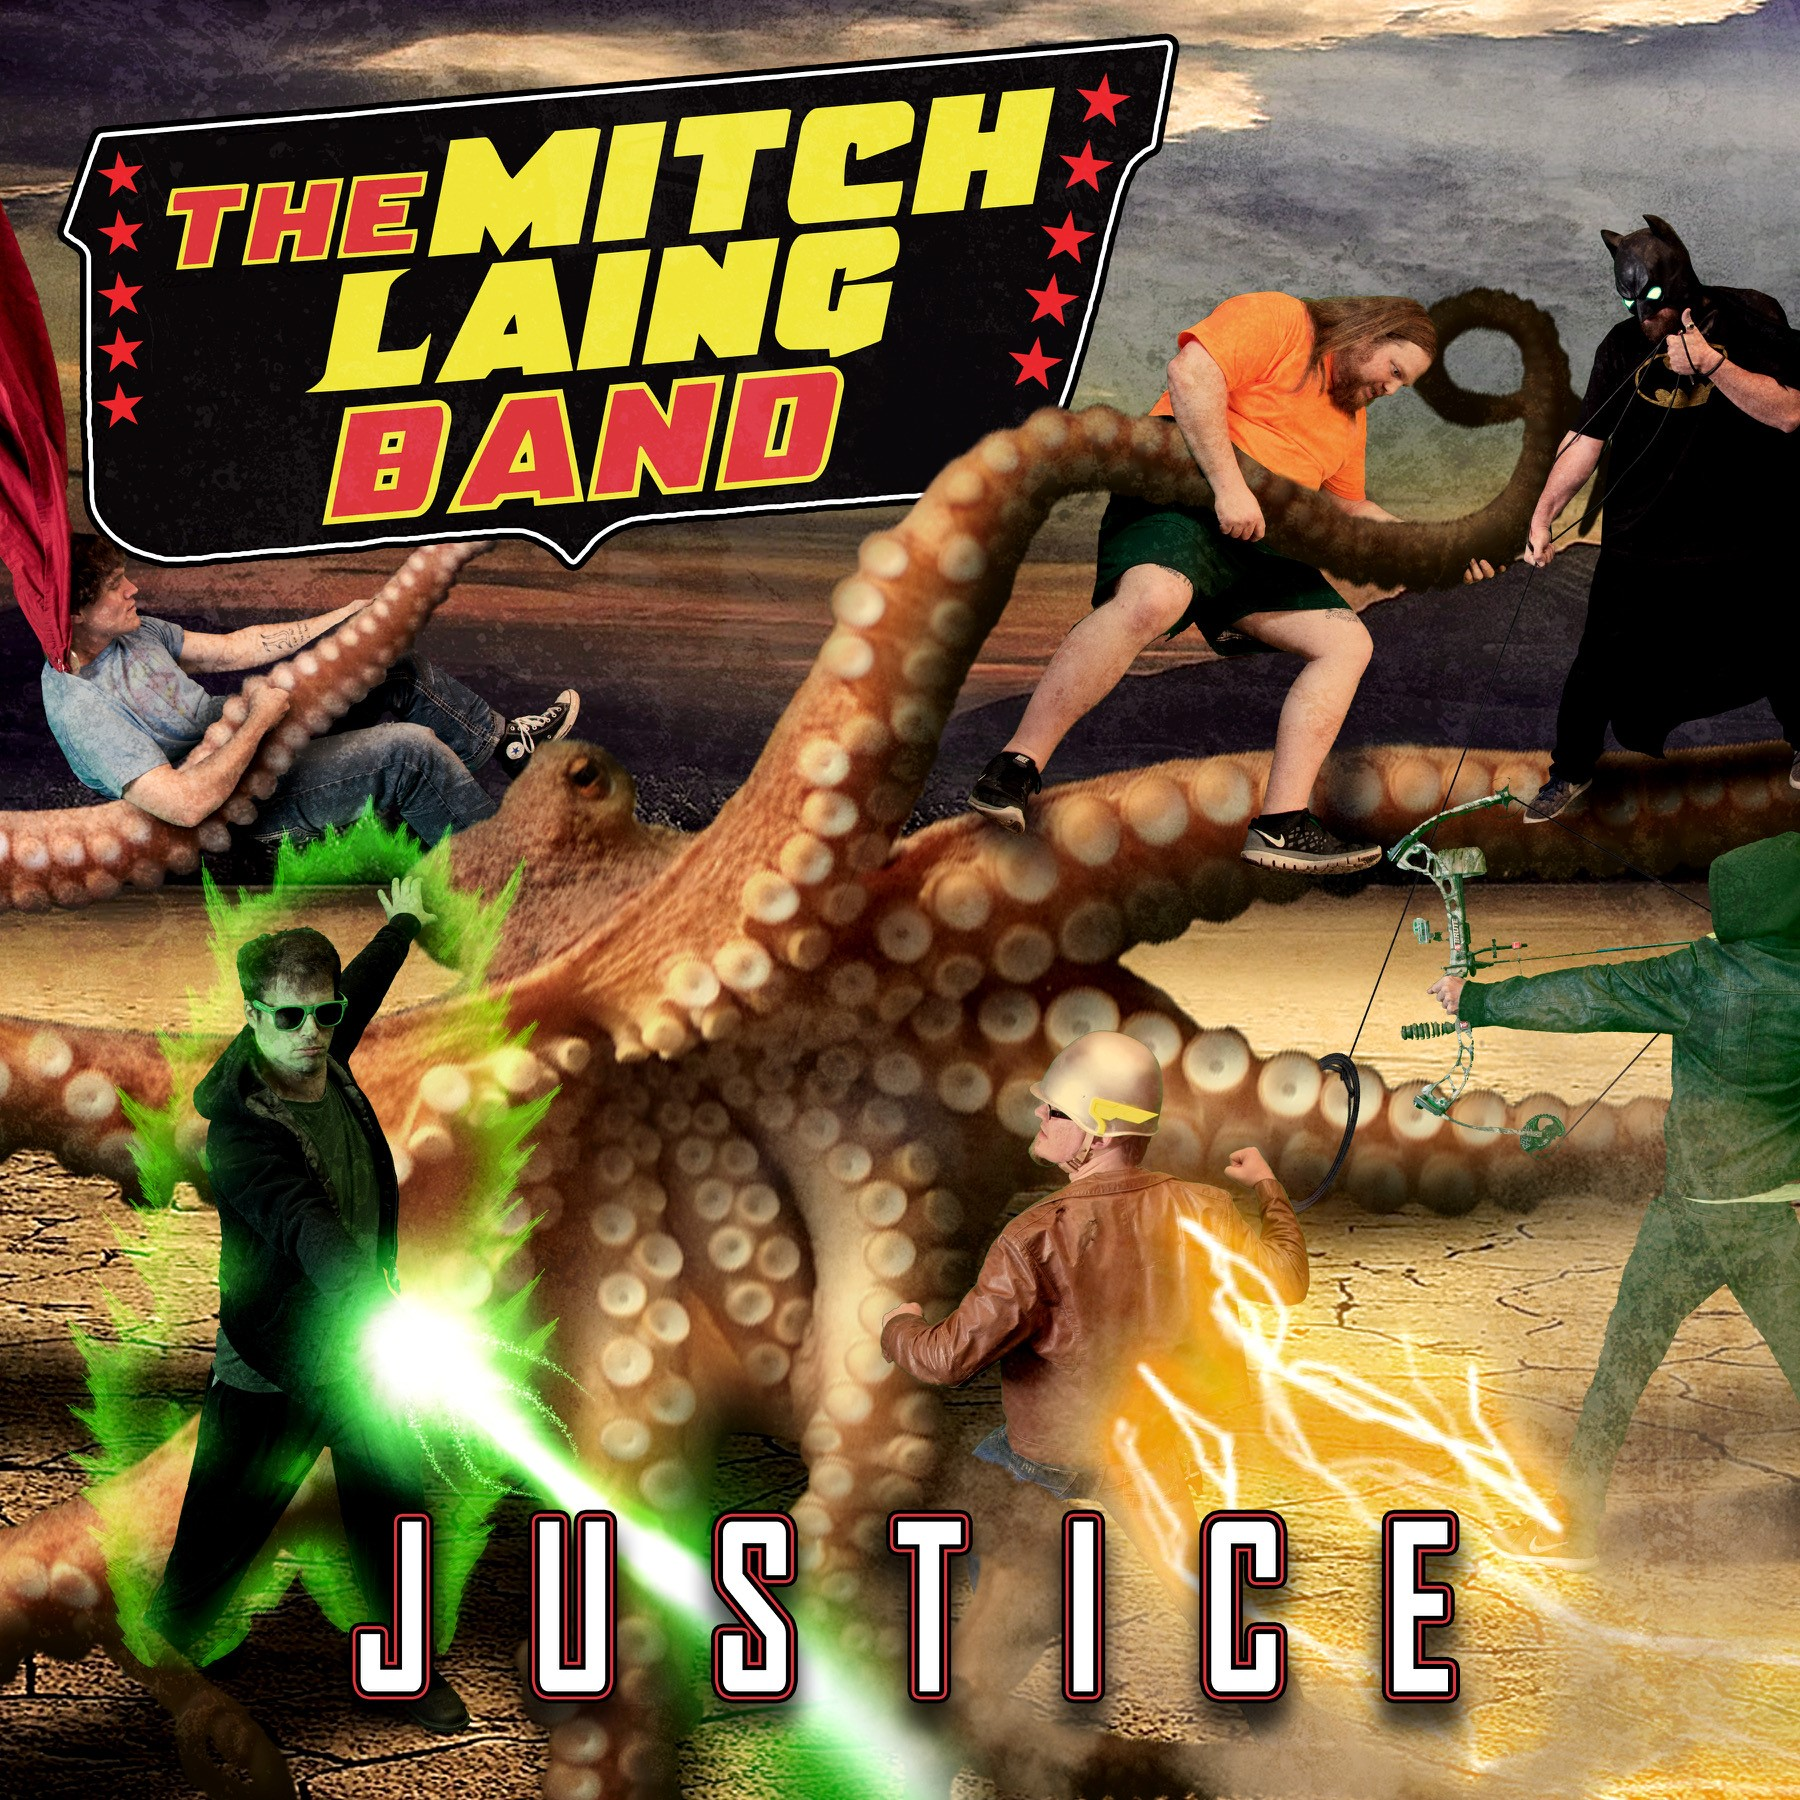 Mitch Laing Band Poster 2.jpg